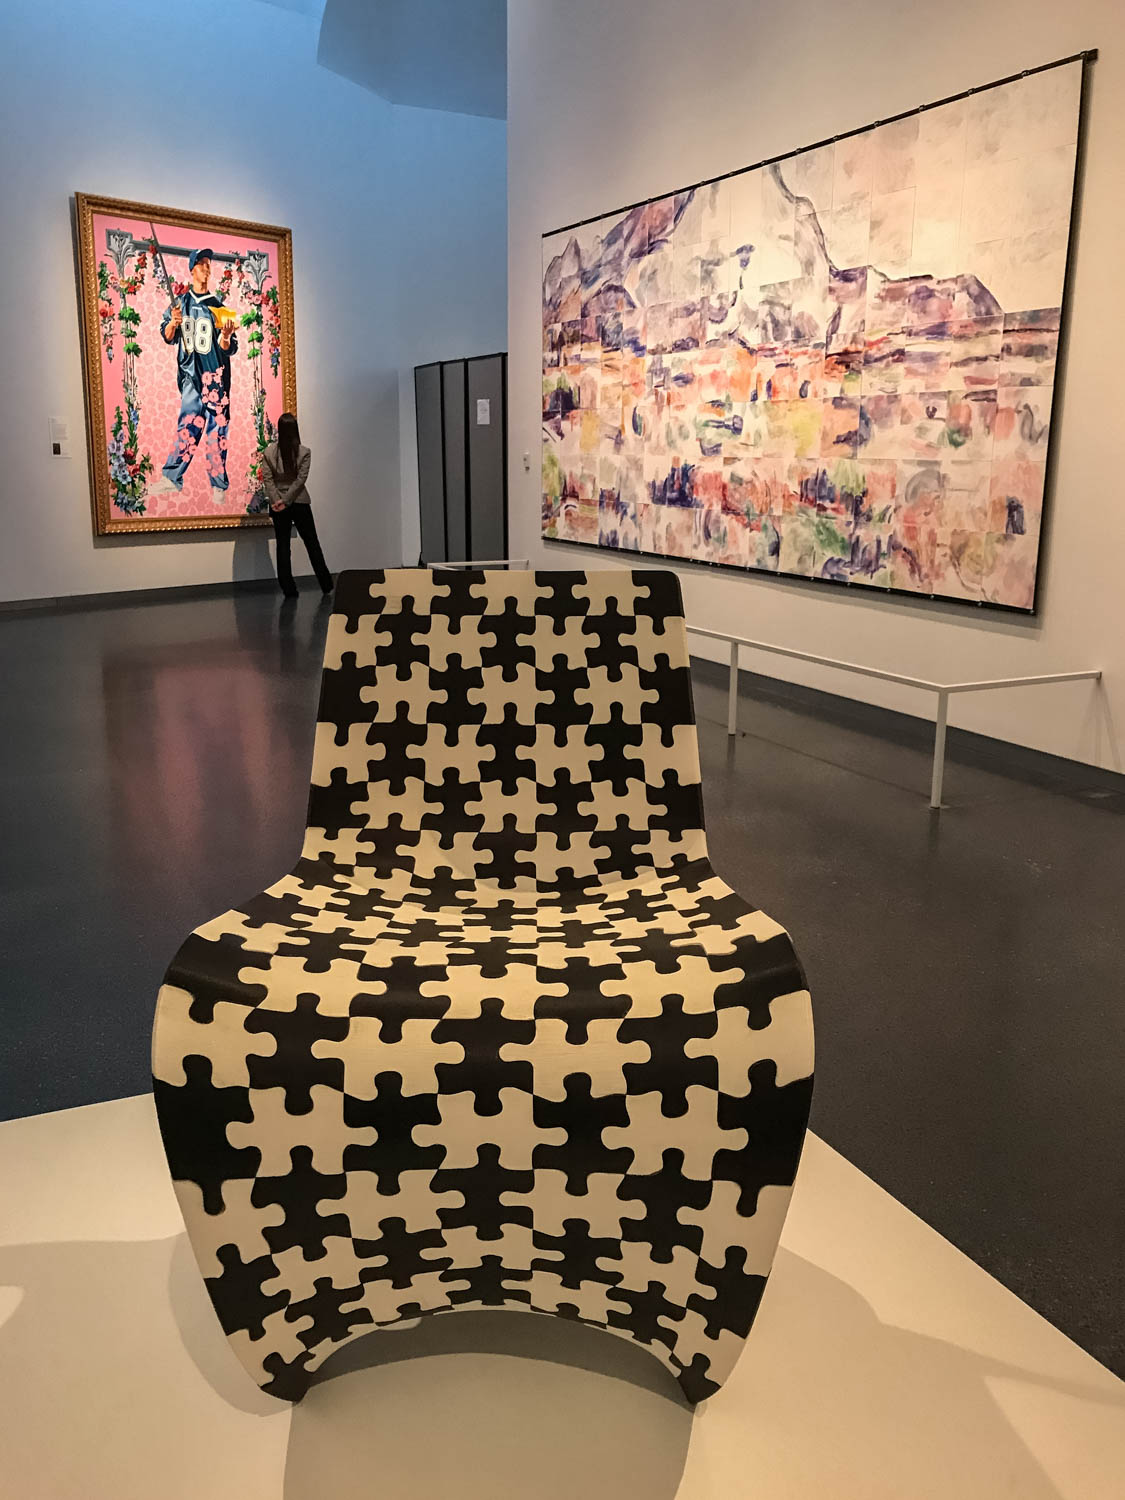 """Makerchair Jigsaw , prototype, 2014 by Joris Laarman (1979-), ABS (acrylonitrile butadiene styrene). """"Often 3-D printing is used for prototyping small objects. Here, Dutch designer Joris Laarman has pushed the boundaries by creating a functional chair constructed of printed components. This prototype features 202 black and white jigsaw pieces that fit together to form the back, seat and supports."""""""